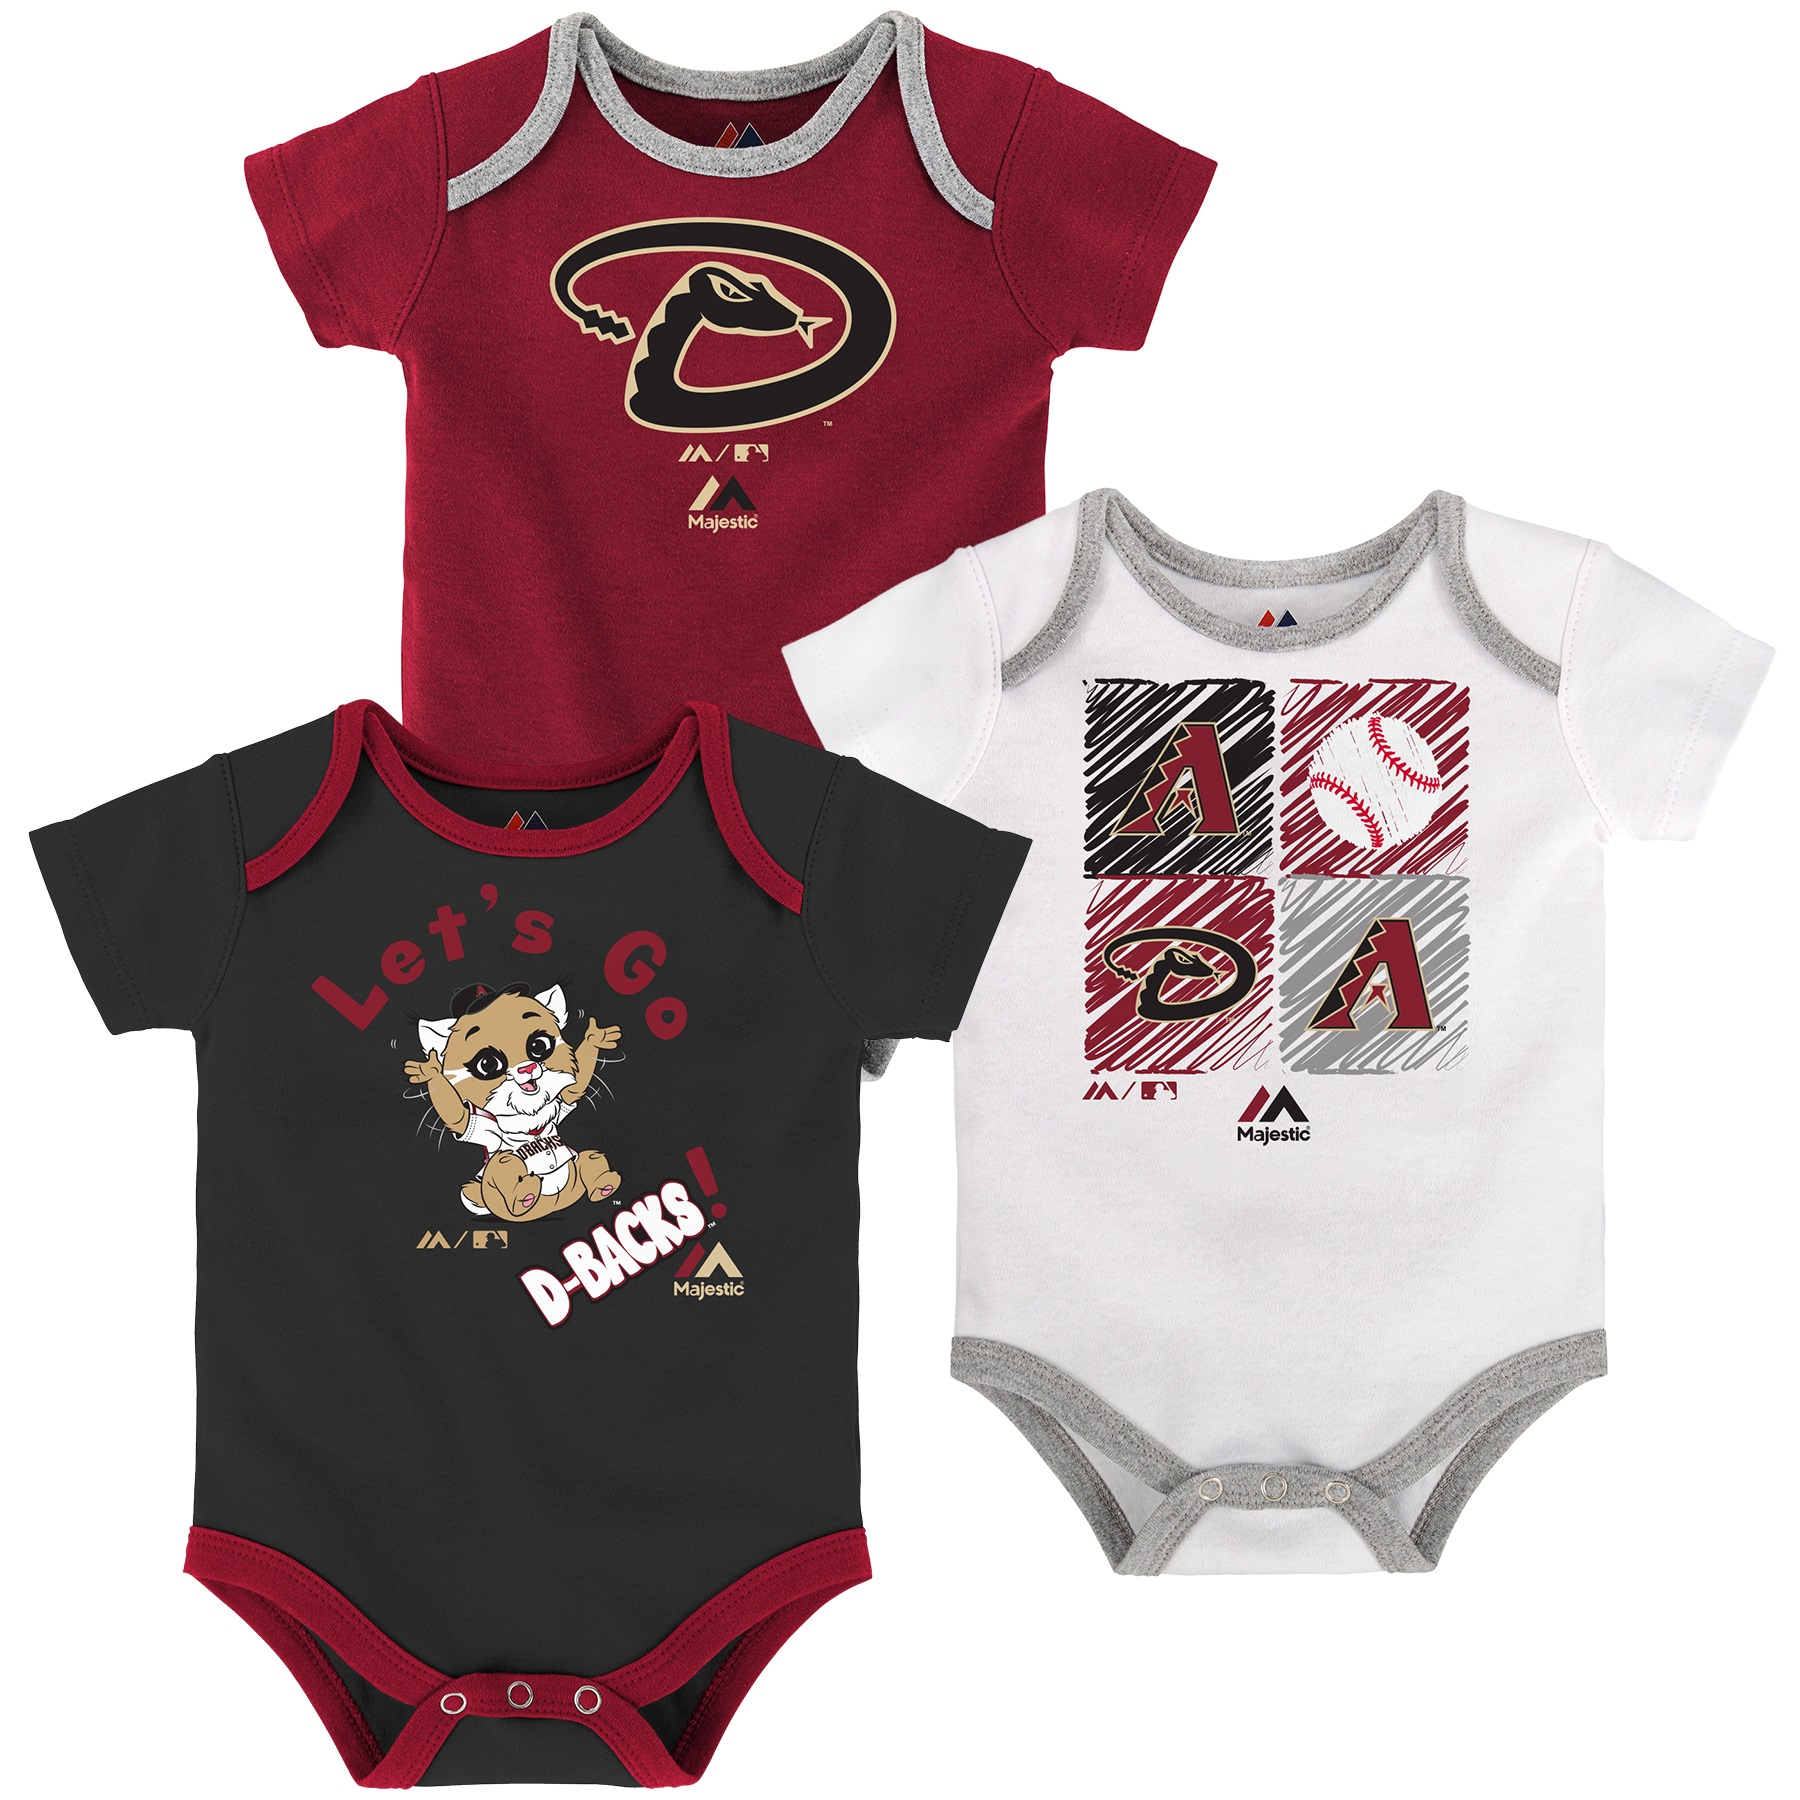 Arizona Diamondbacks Majestic Newborn & Infant Go Team 3-Pack Bodysuit Set - Red/Black/White